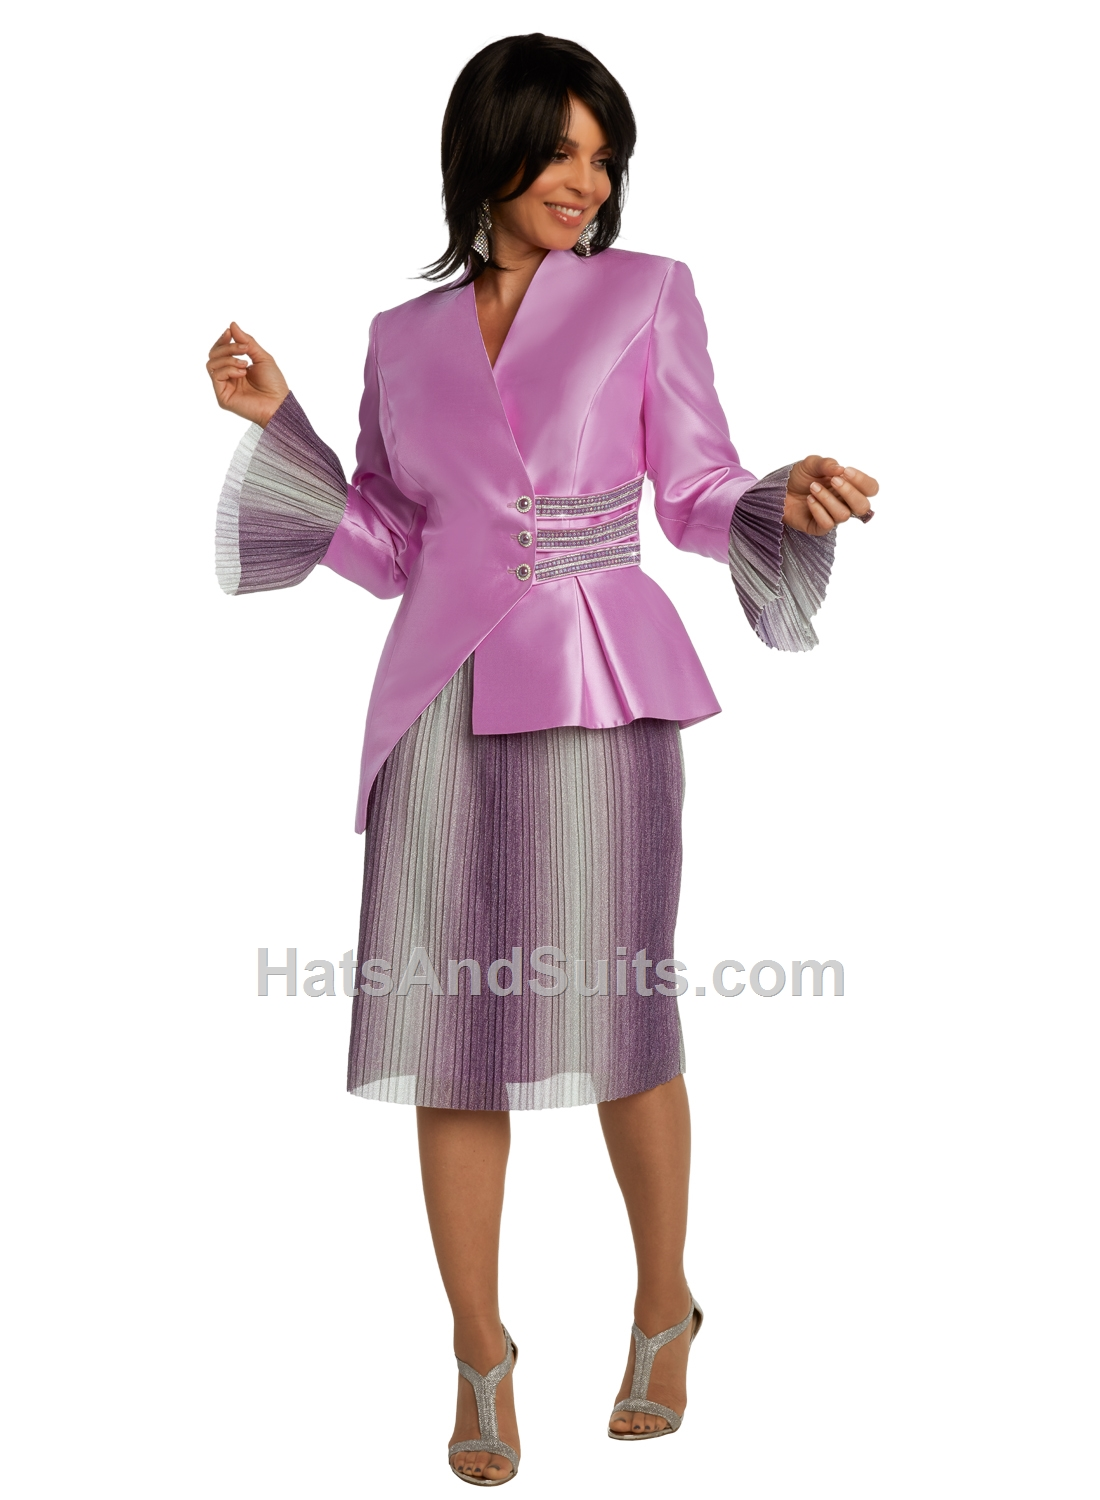 11842 Donna Vinci 2 Pc. Jacket & Skirt Set. SP20